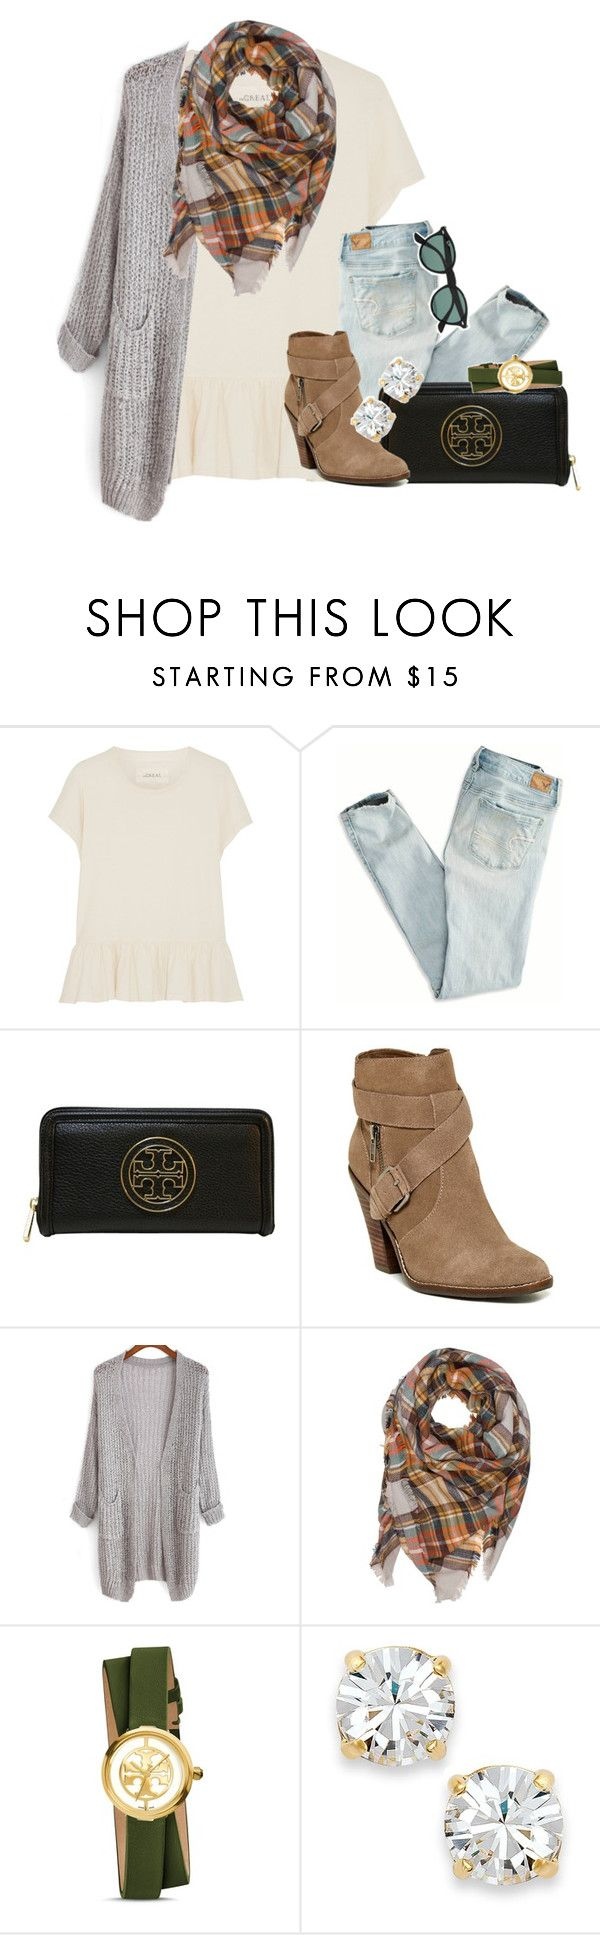 """""""the fosters is so good!!!!"""" by thefashionbyem ❤ liked on Polyvore featuring The Great, American Eagle Outfitters, Tory Burch, Dolce Vita, Kate Spade, Ray-Ban, women's clothing, women, female and woman"""